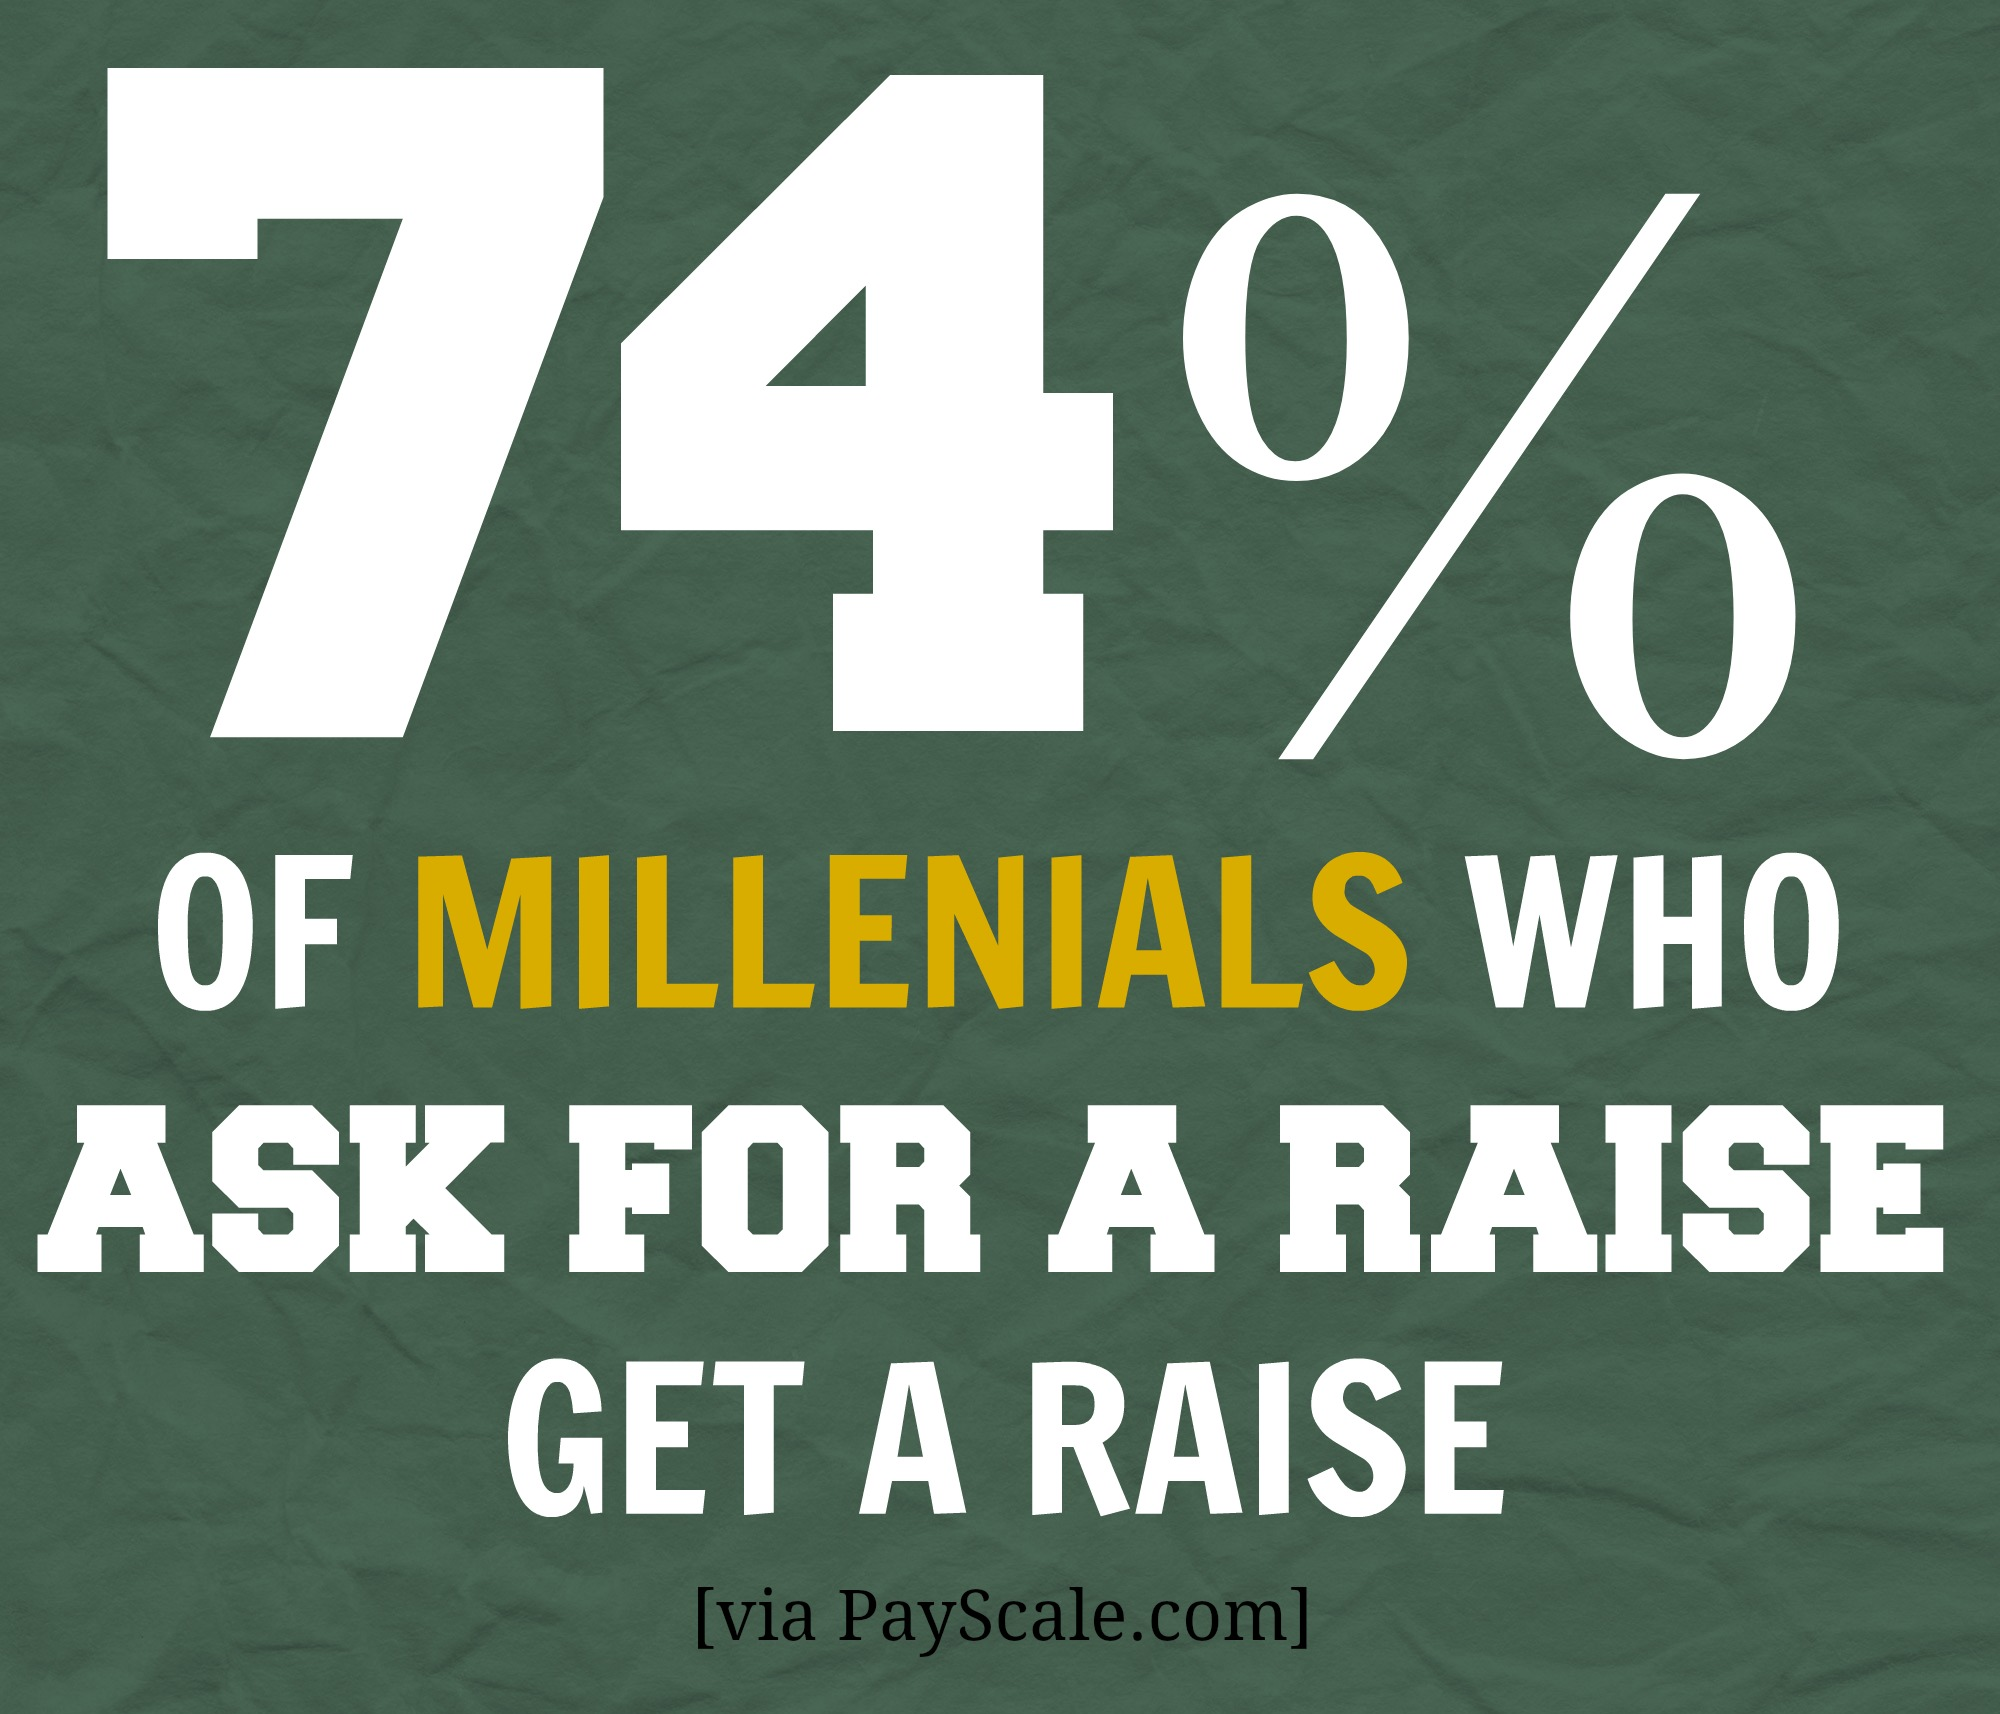 According To A Payscale Study In 2015, 74 Percent Of Working  Millennials Who Asked For A Raise Got The Pay They Requested Or A Smaller  Raise After